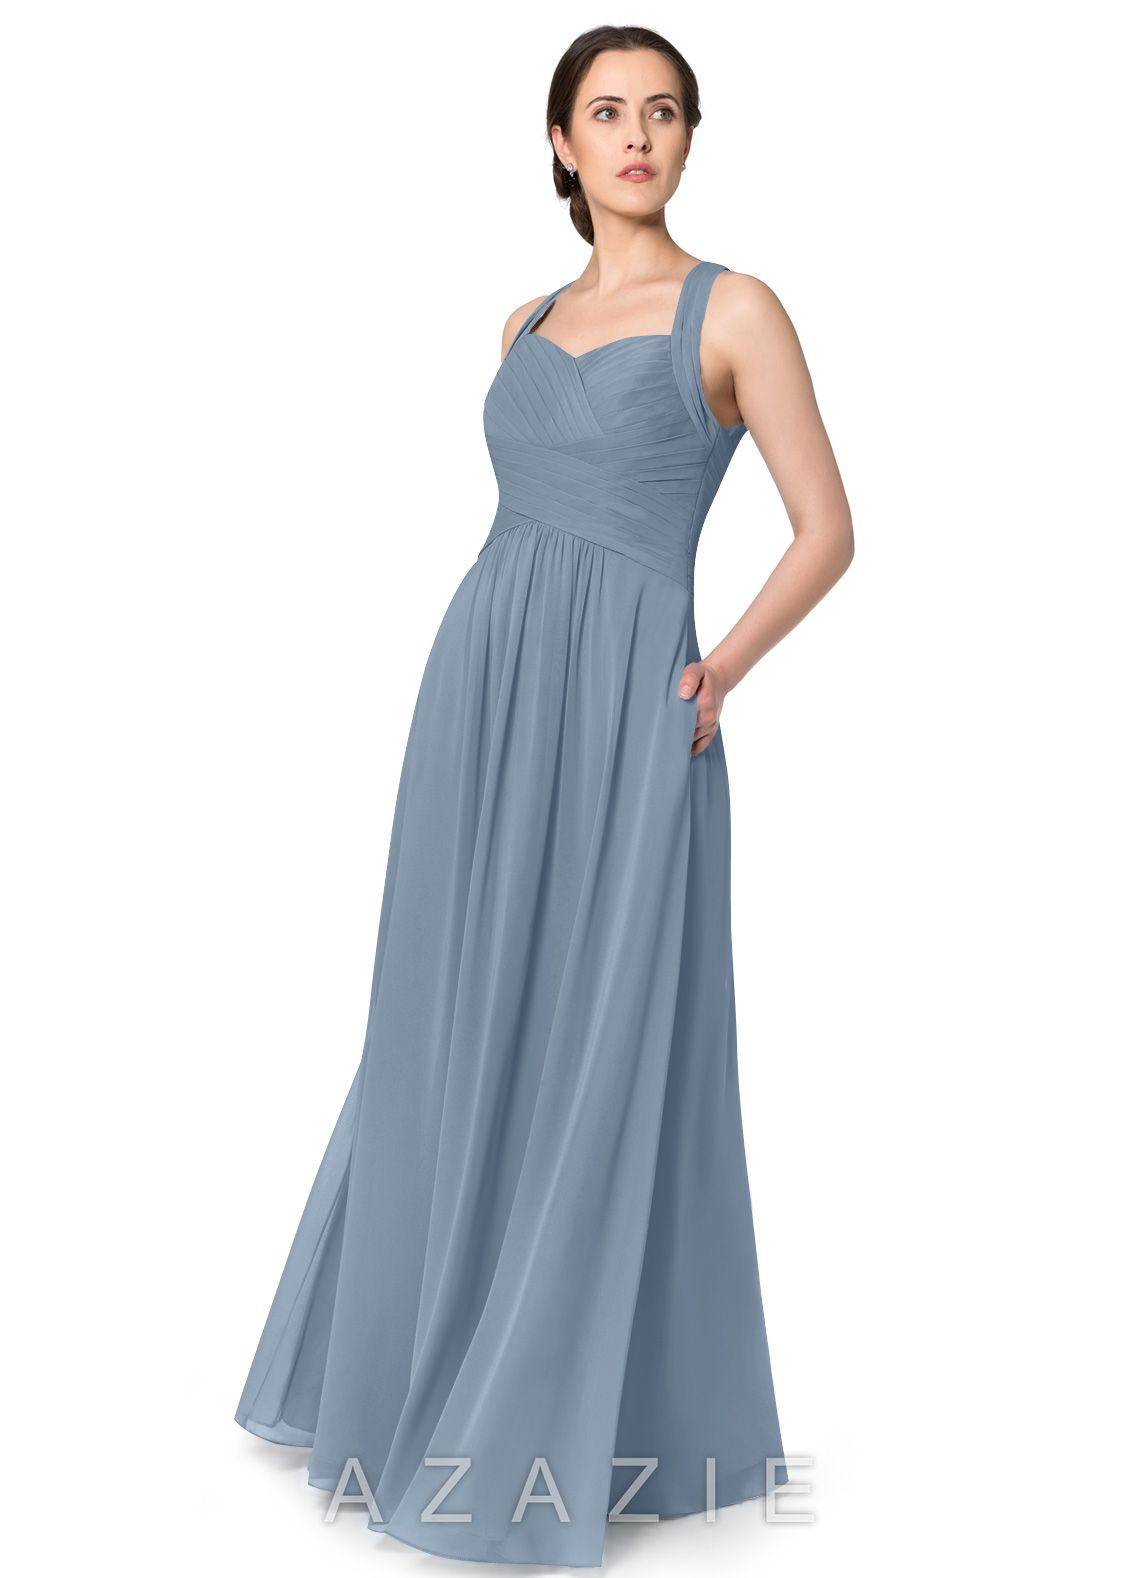 1349ca3046d7 Azazie Claudia Bridesmaid Dress - Dusty Blue | Azazie